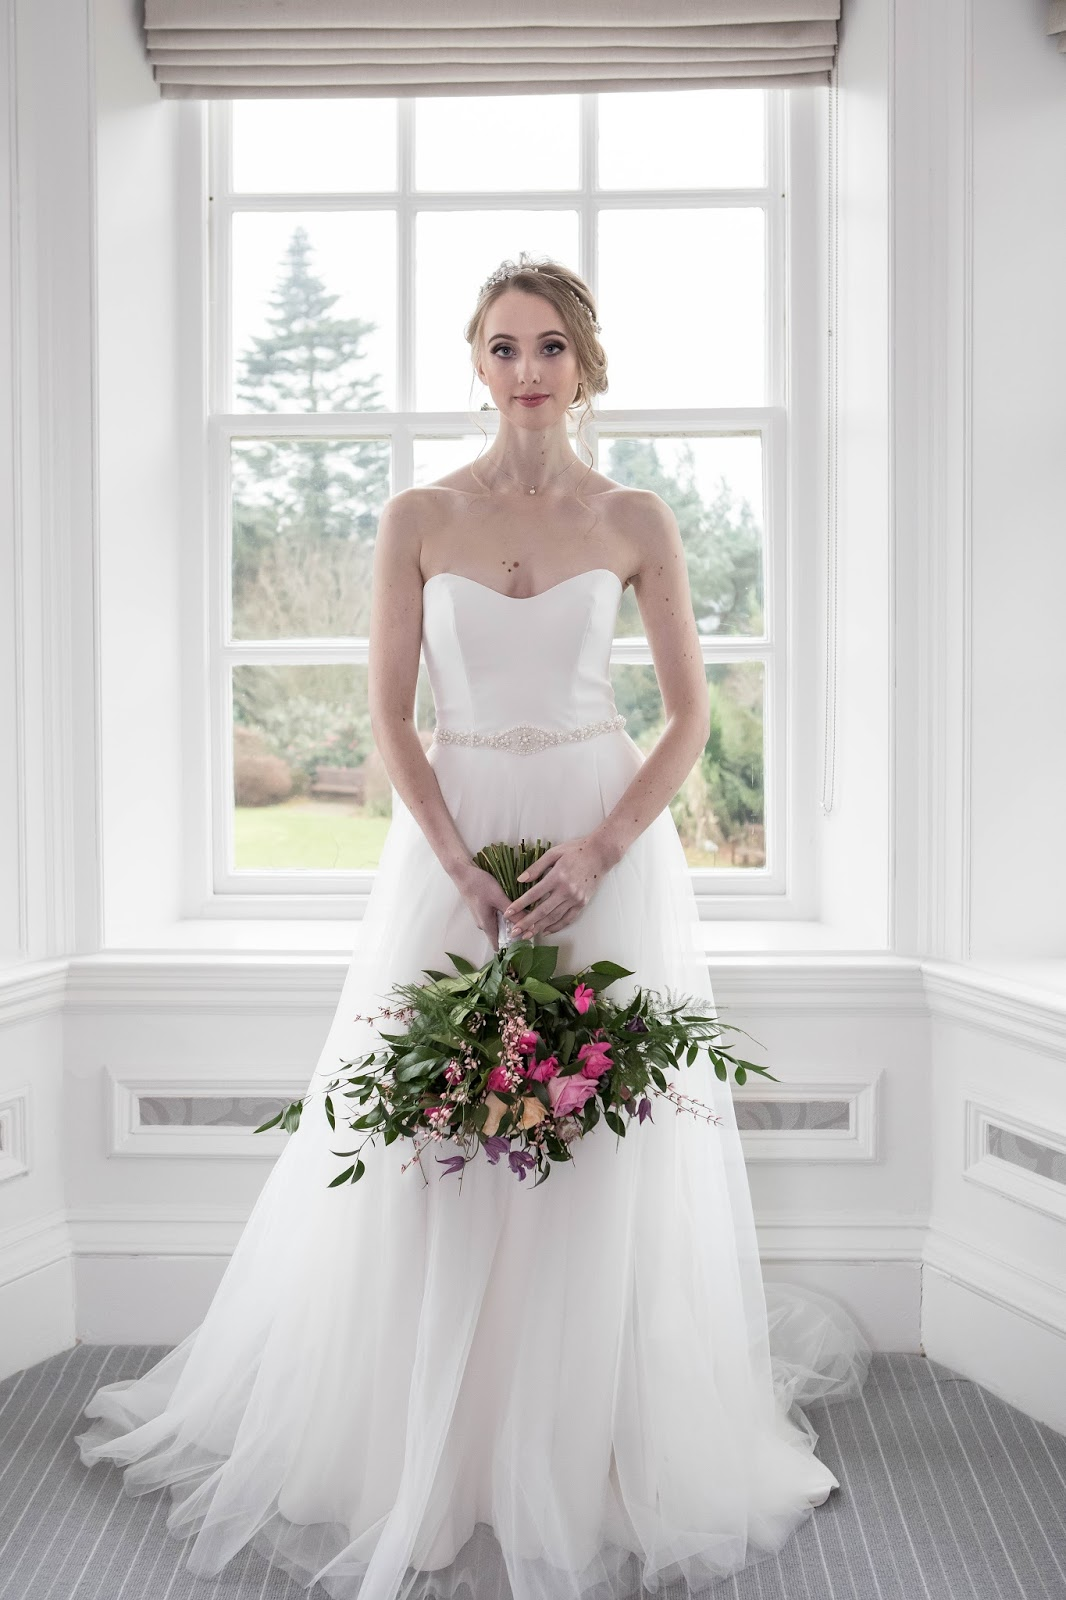 Wedding Dresses and Accessories at Bridal Indulgence